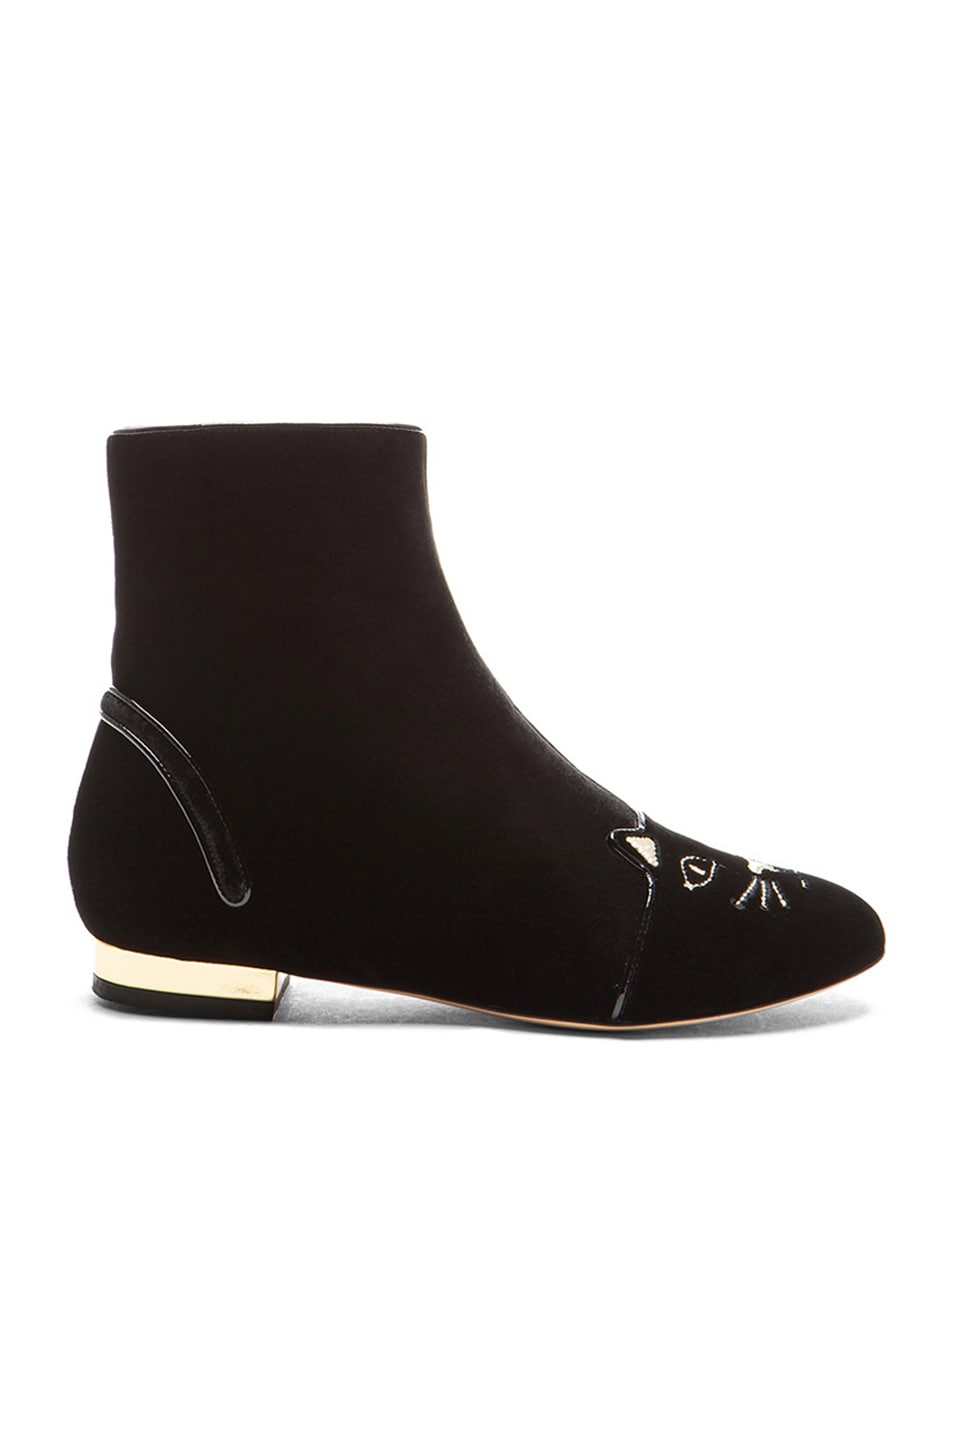 Image 1 of Charlotte Olympia Puss in Boots Velvet Booties in Black